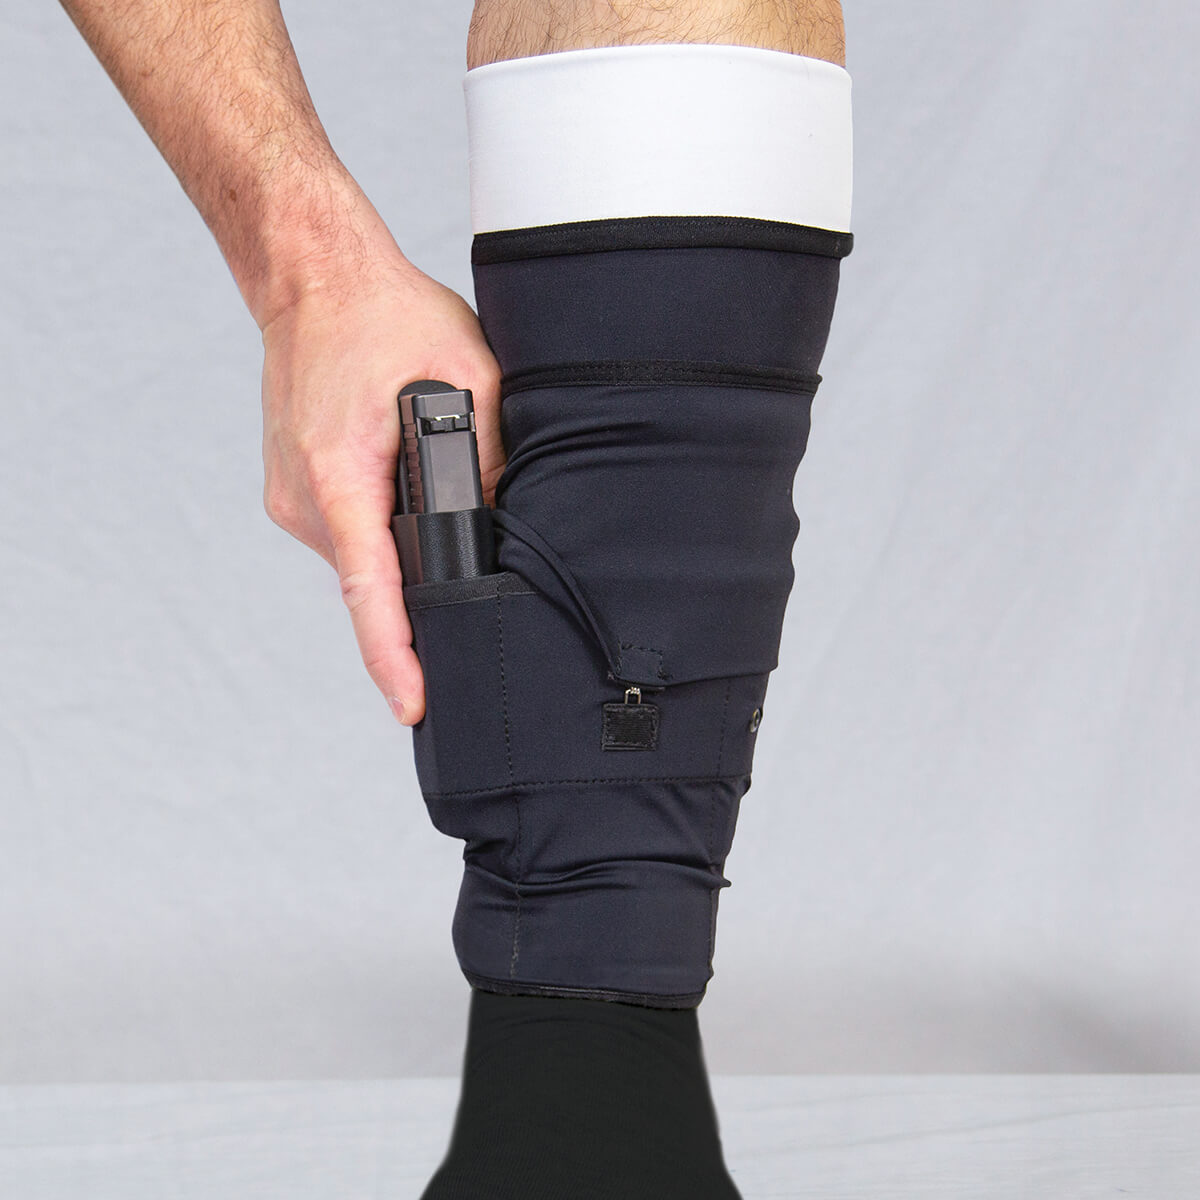 470743_Ankle-Gun-Sox-Pro_Retention-Flap-pulled_Front-view_Flyer